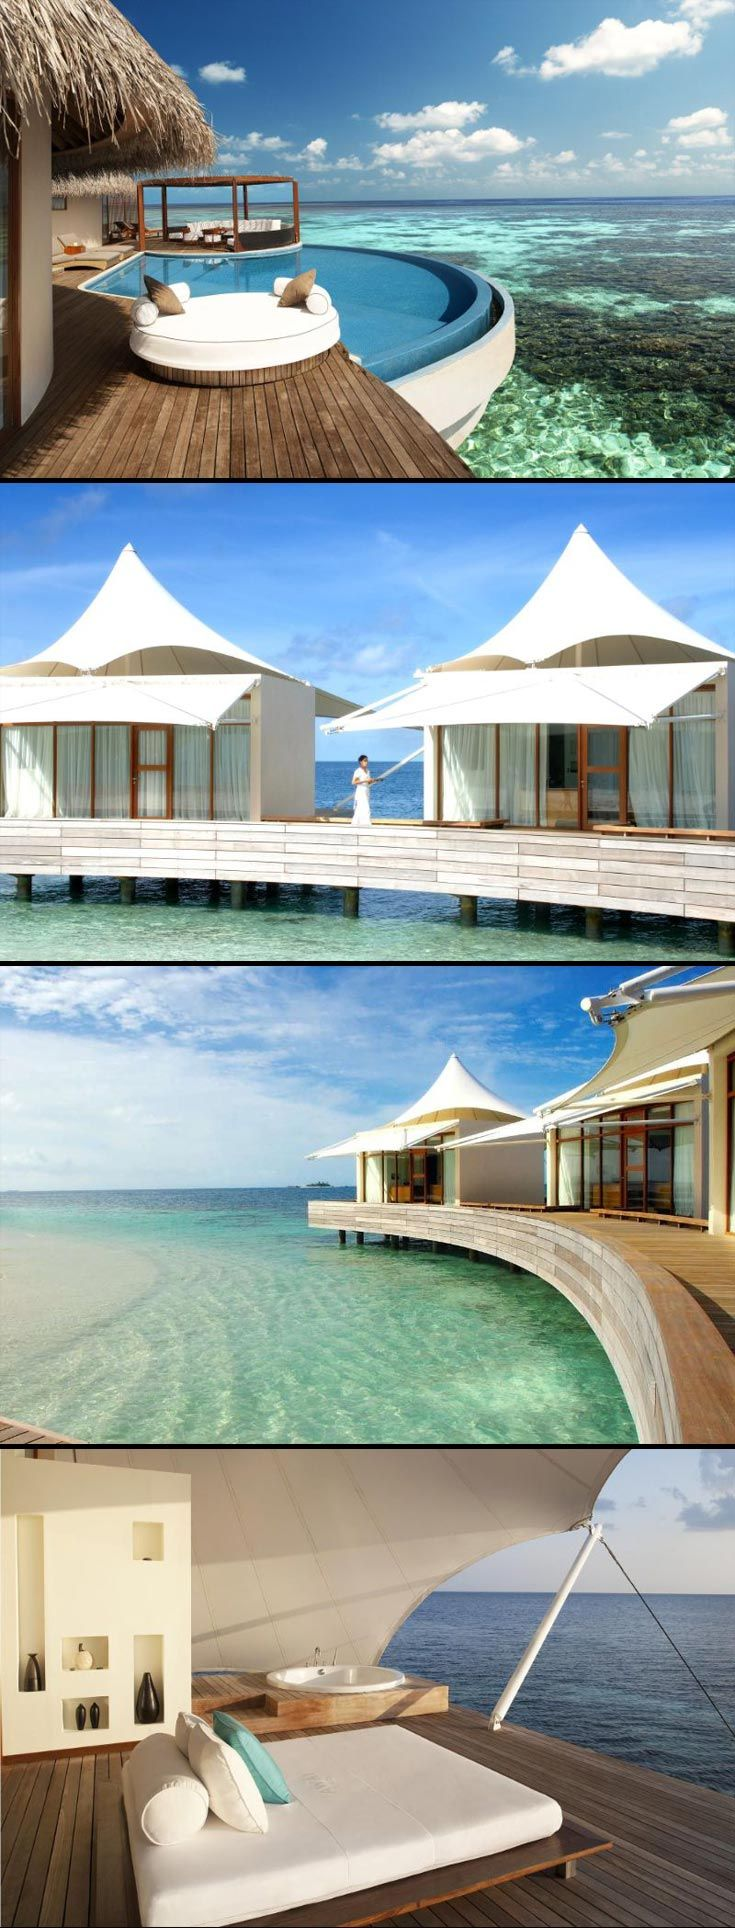 Top 10 Honeymoon Resorts In The Maldives